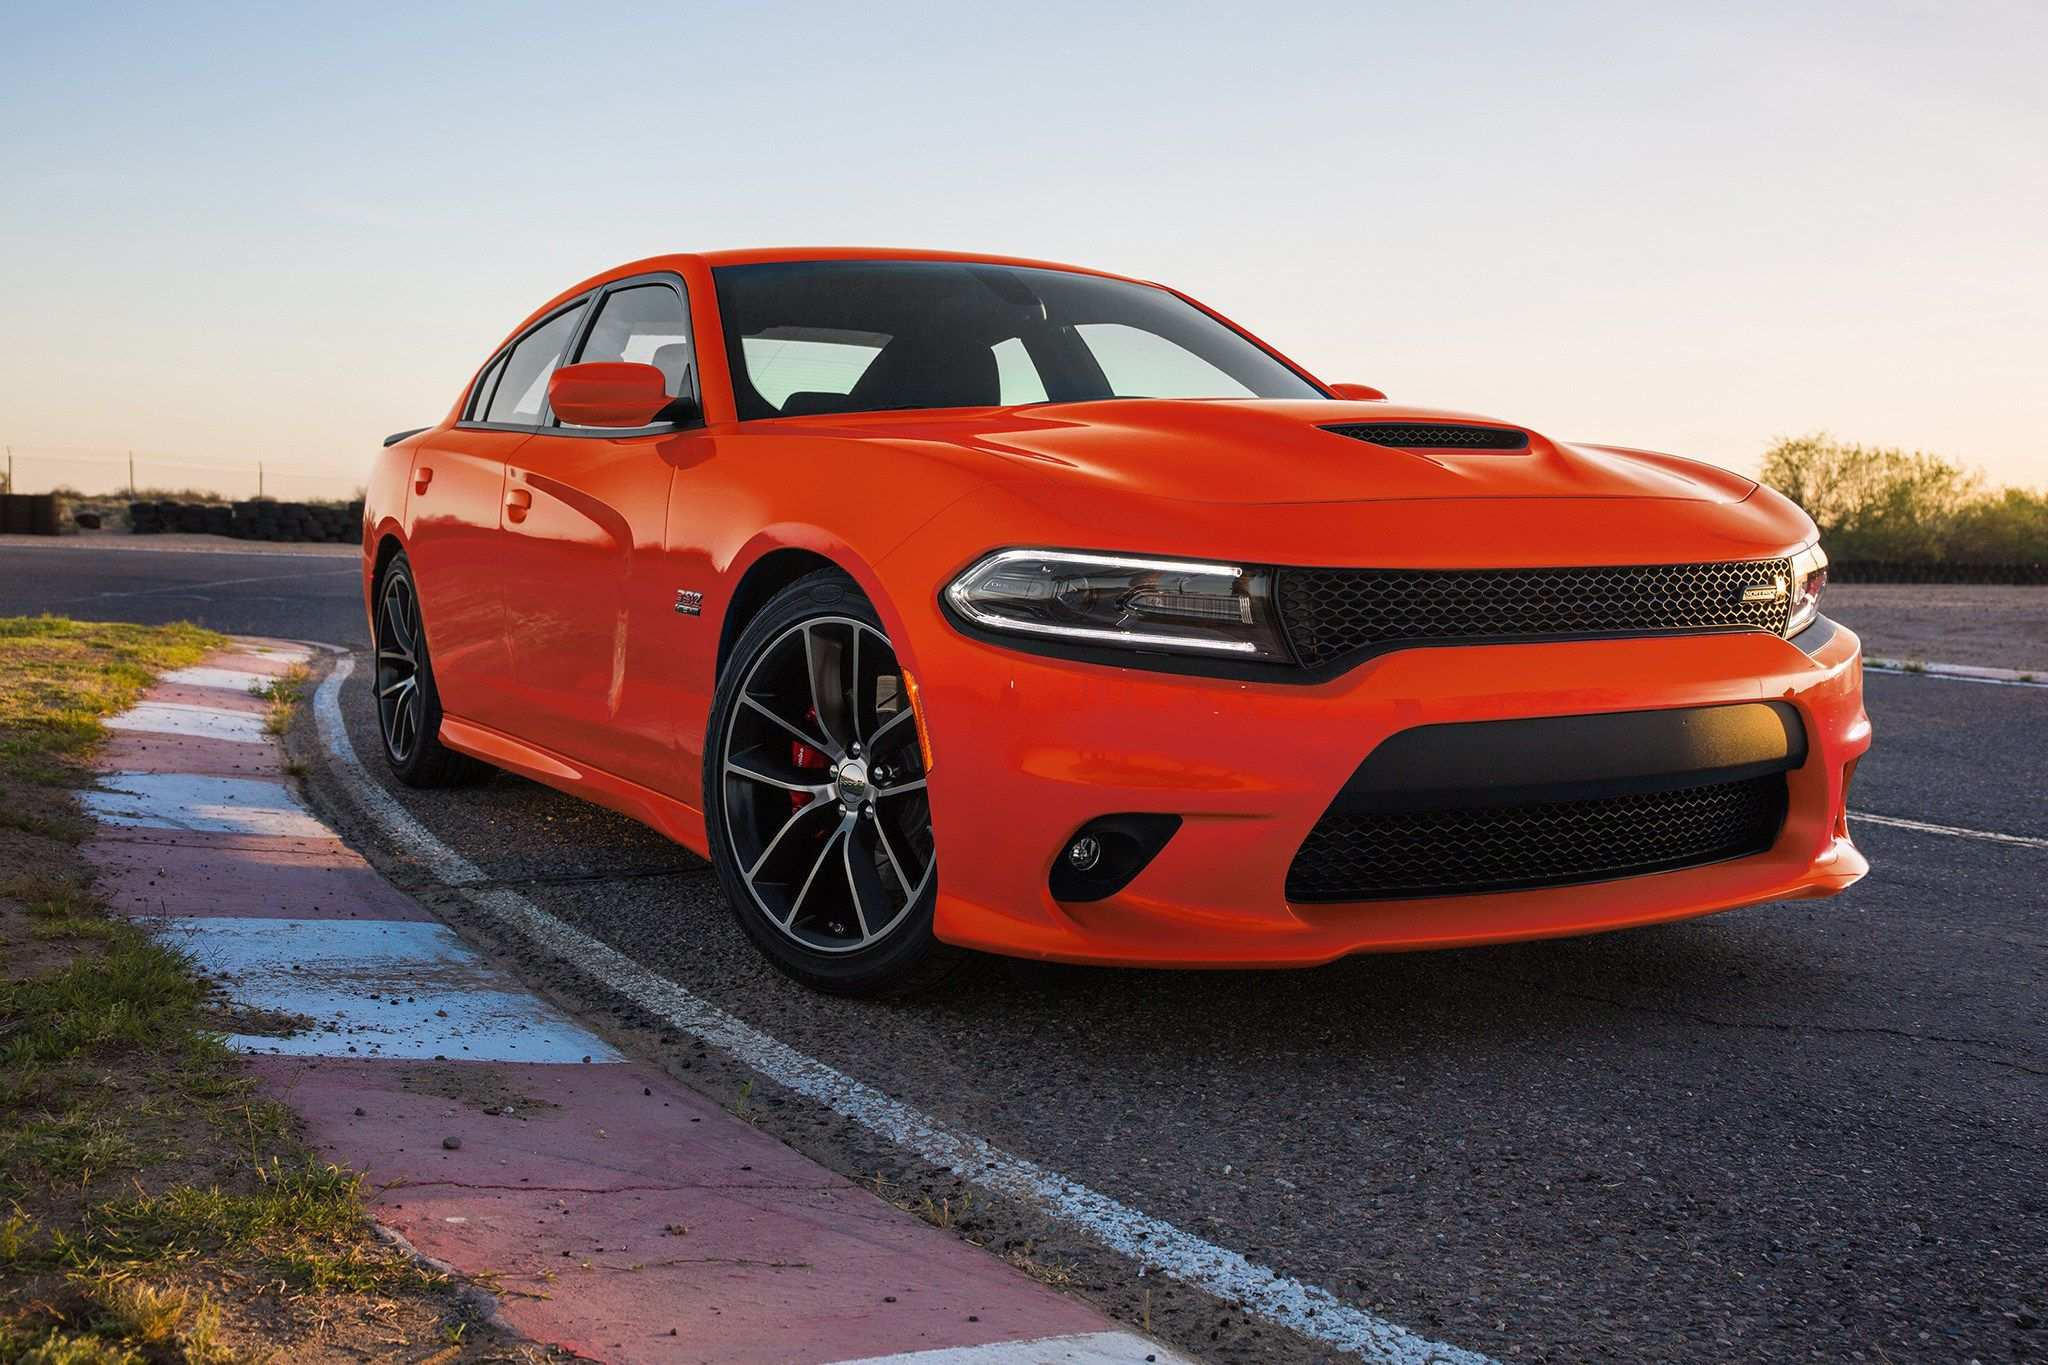 80 All New 2020 Dodge Charger SRT8 New Concept with 2020 Dodge Charger SRT8